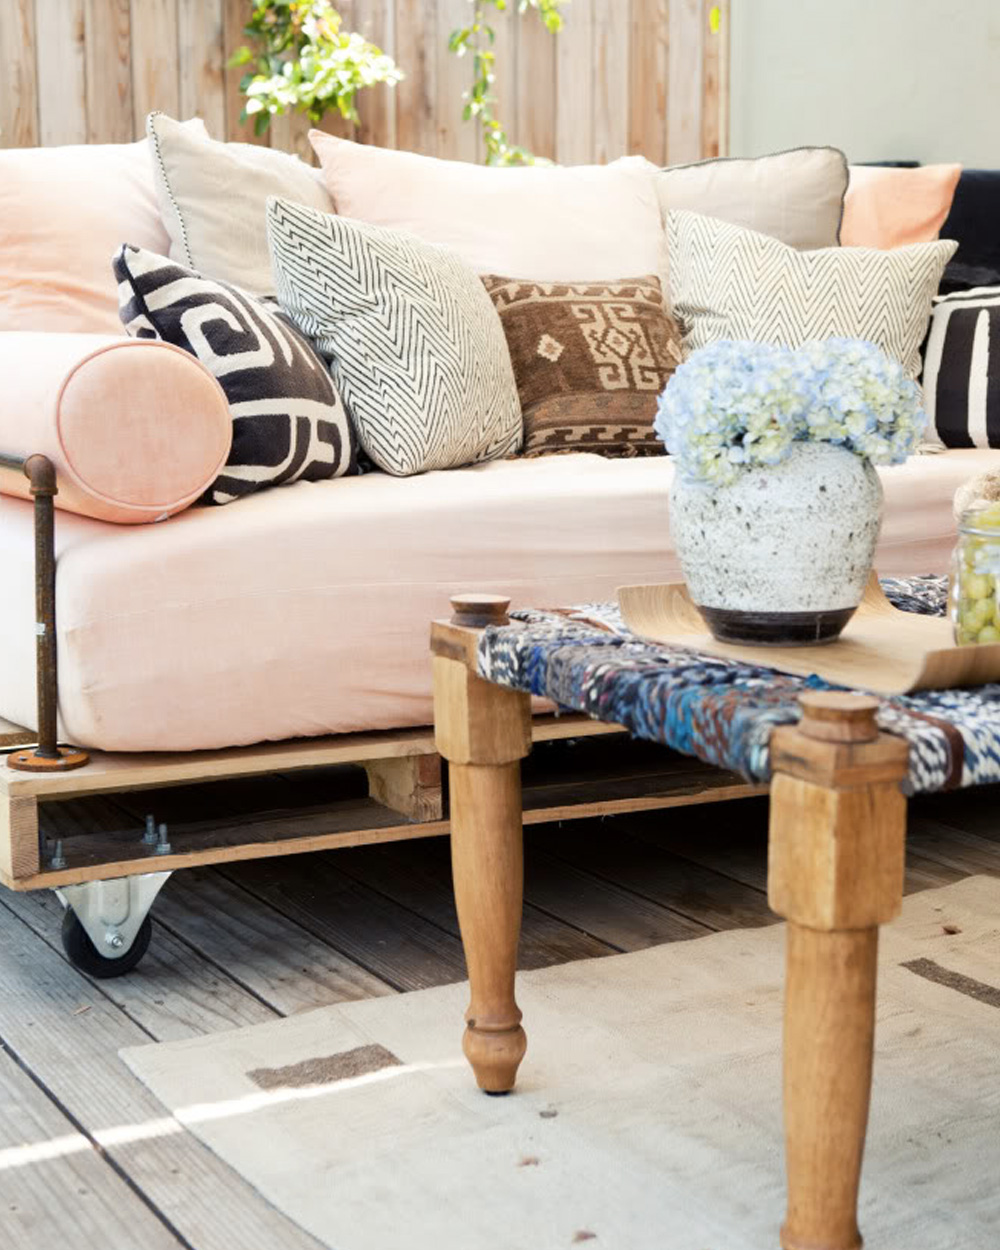 5 diy avec des palettes de bois shake my blog. Black Bedroom Furniture Sets. Home Design Ideas